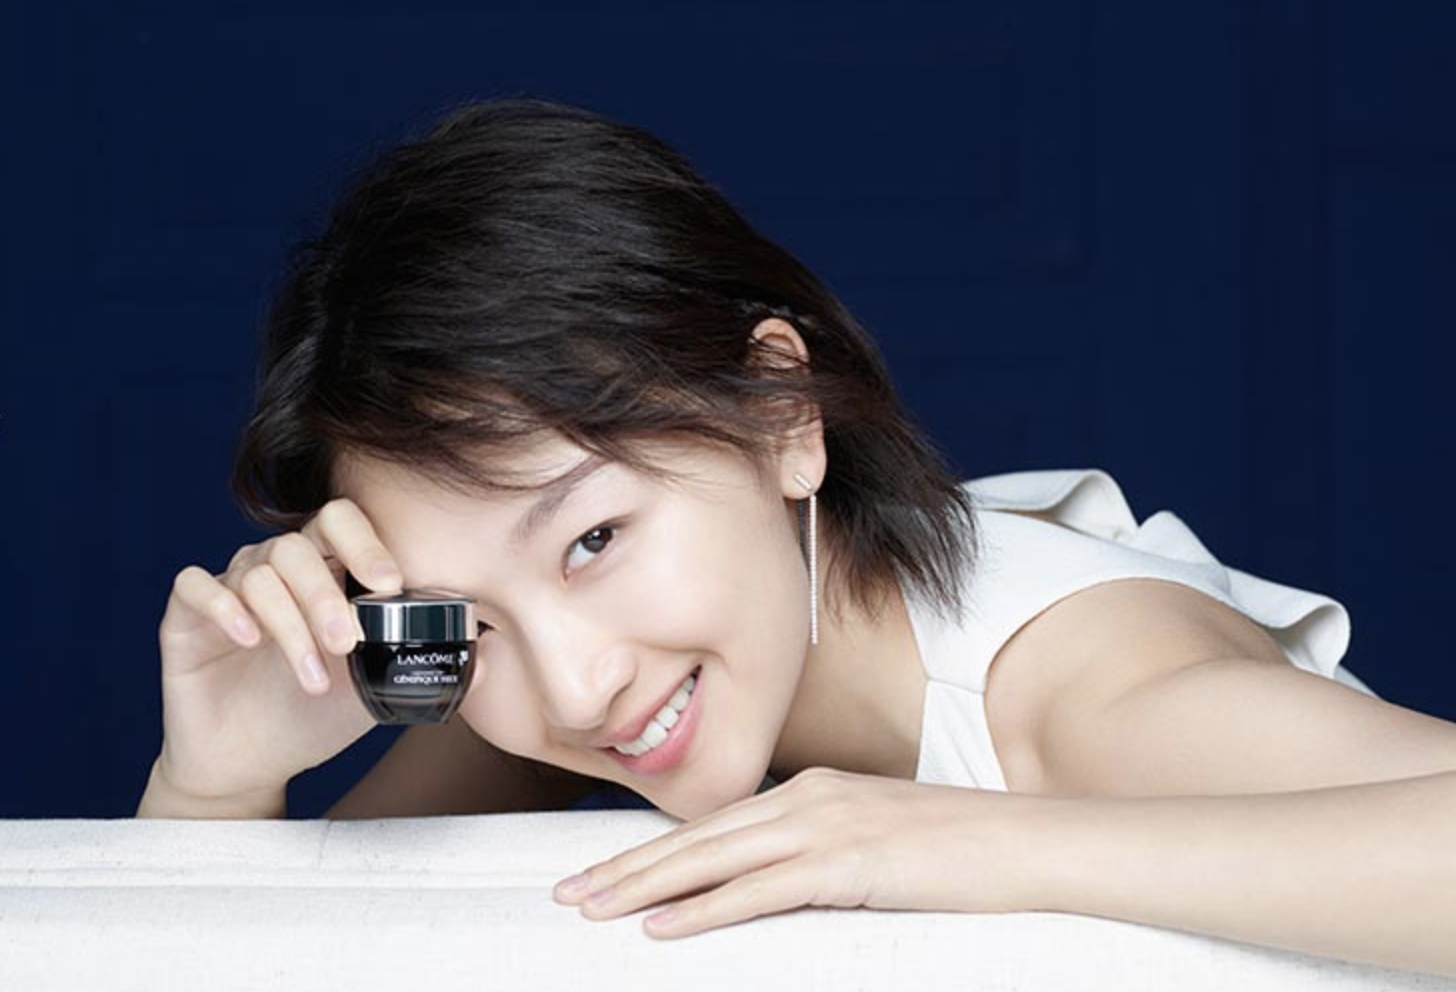 Anti-Aging Cream Market in China: Stay Young Forever!